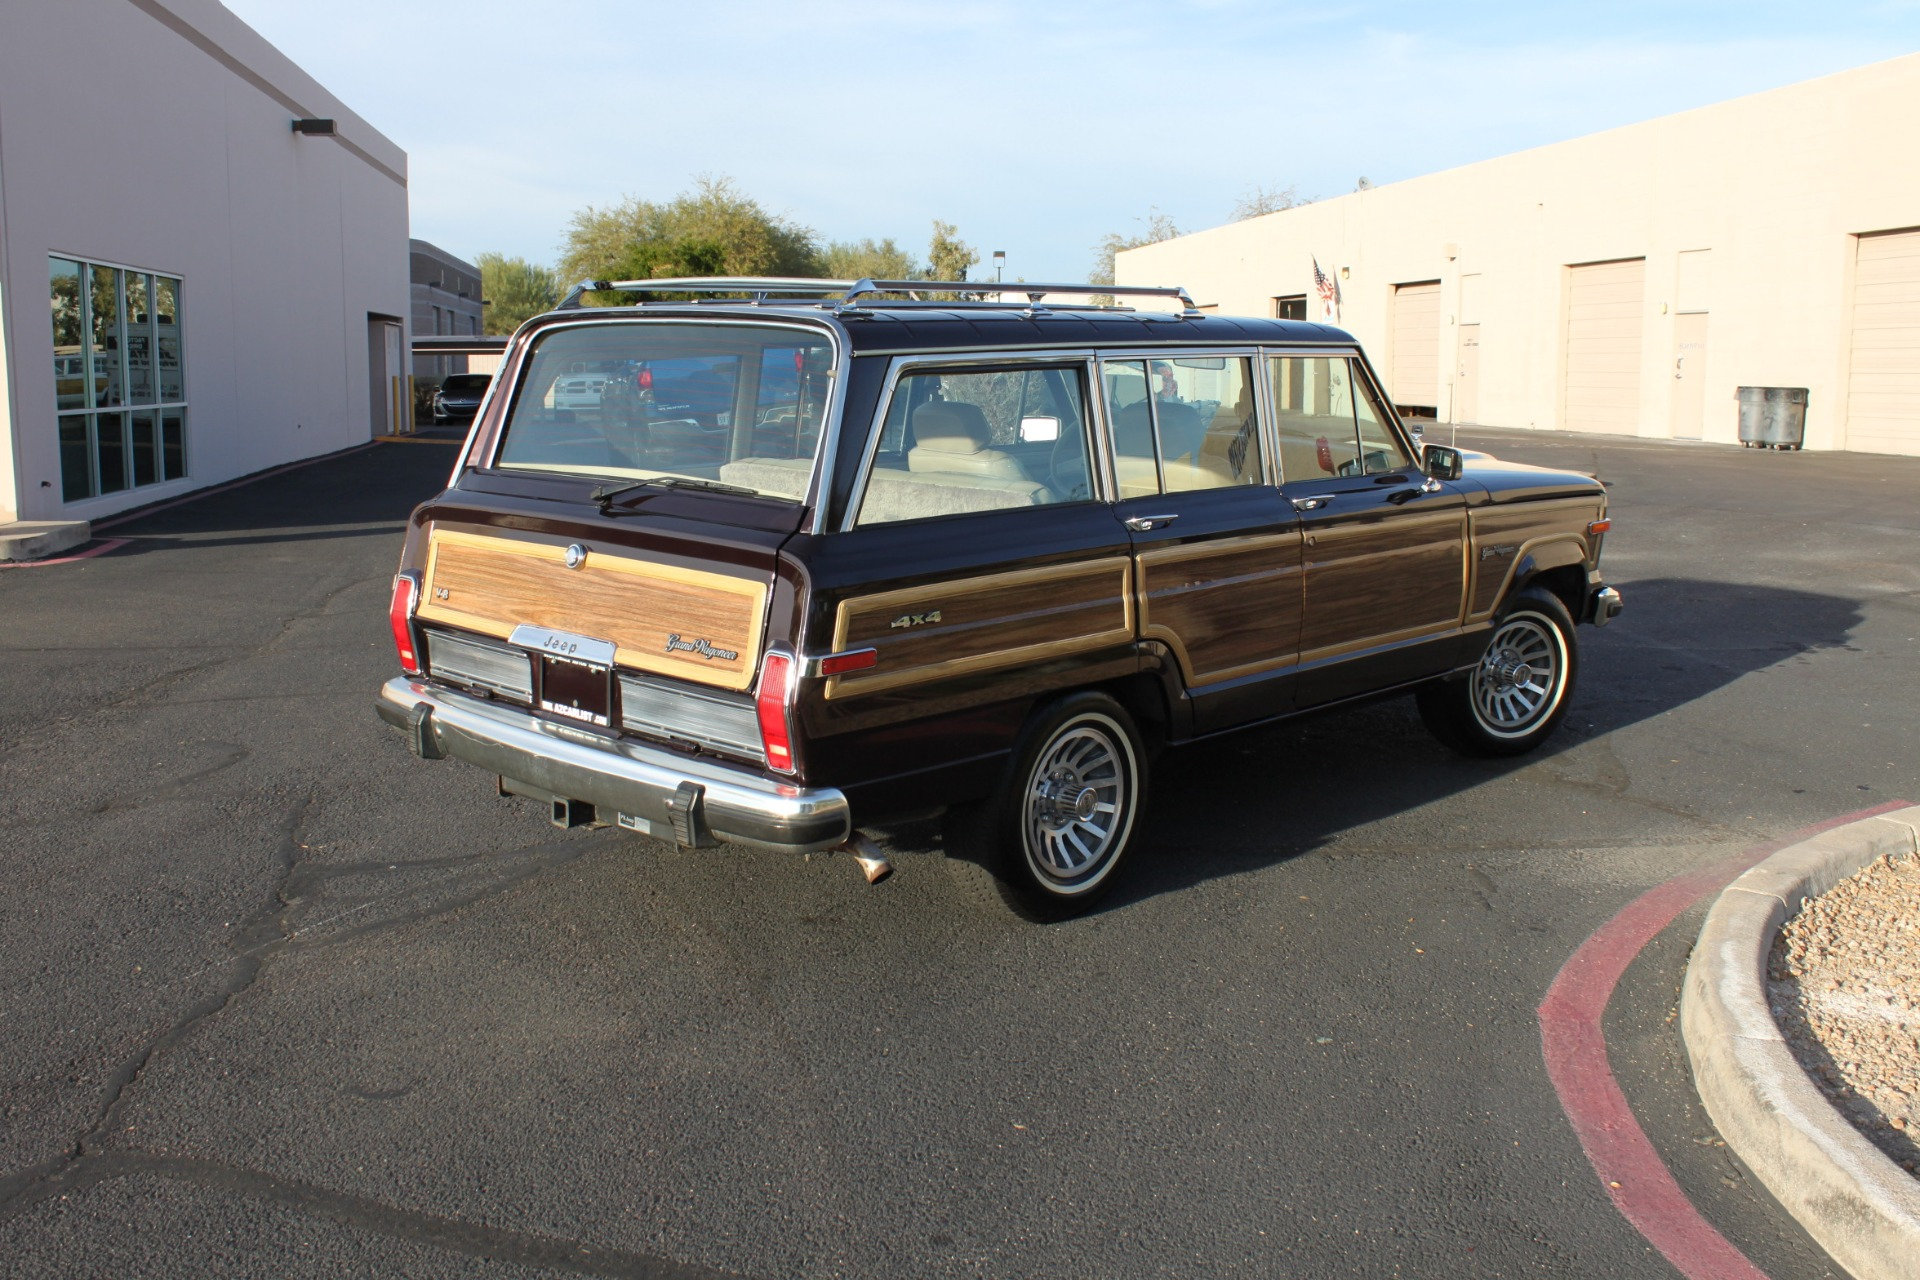 Used-1990-Jeep-Grand-Wagoneer-Base-Chalenger